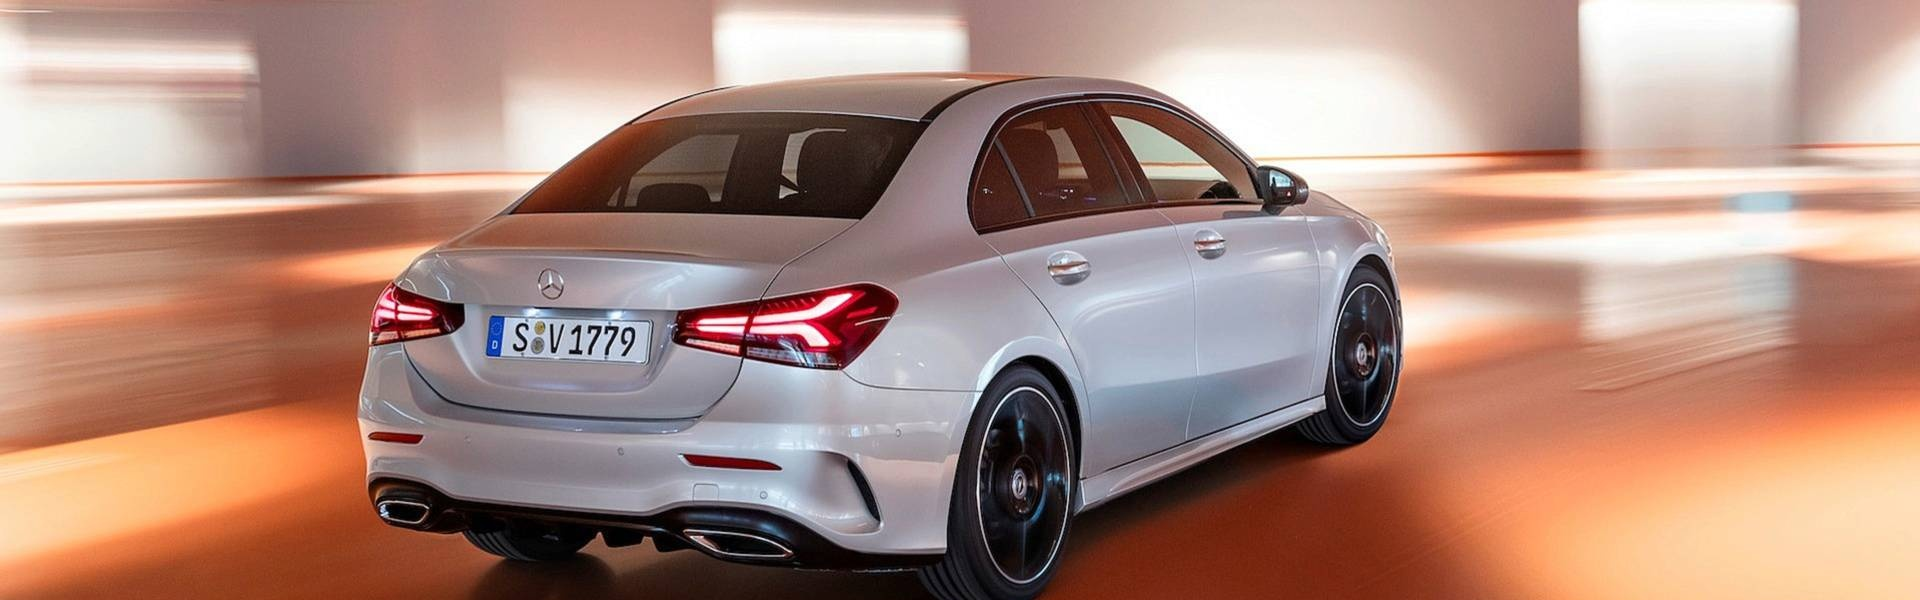 2019-mercedes-benz-a-class-sedan (5).jpg